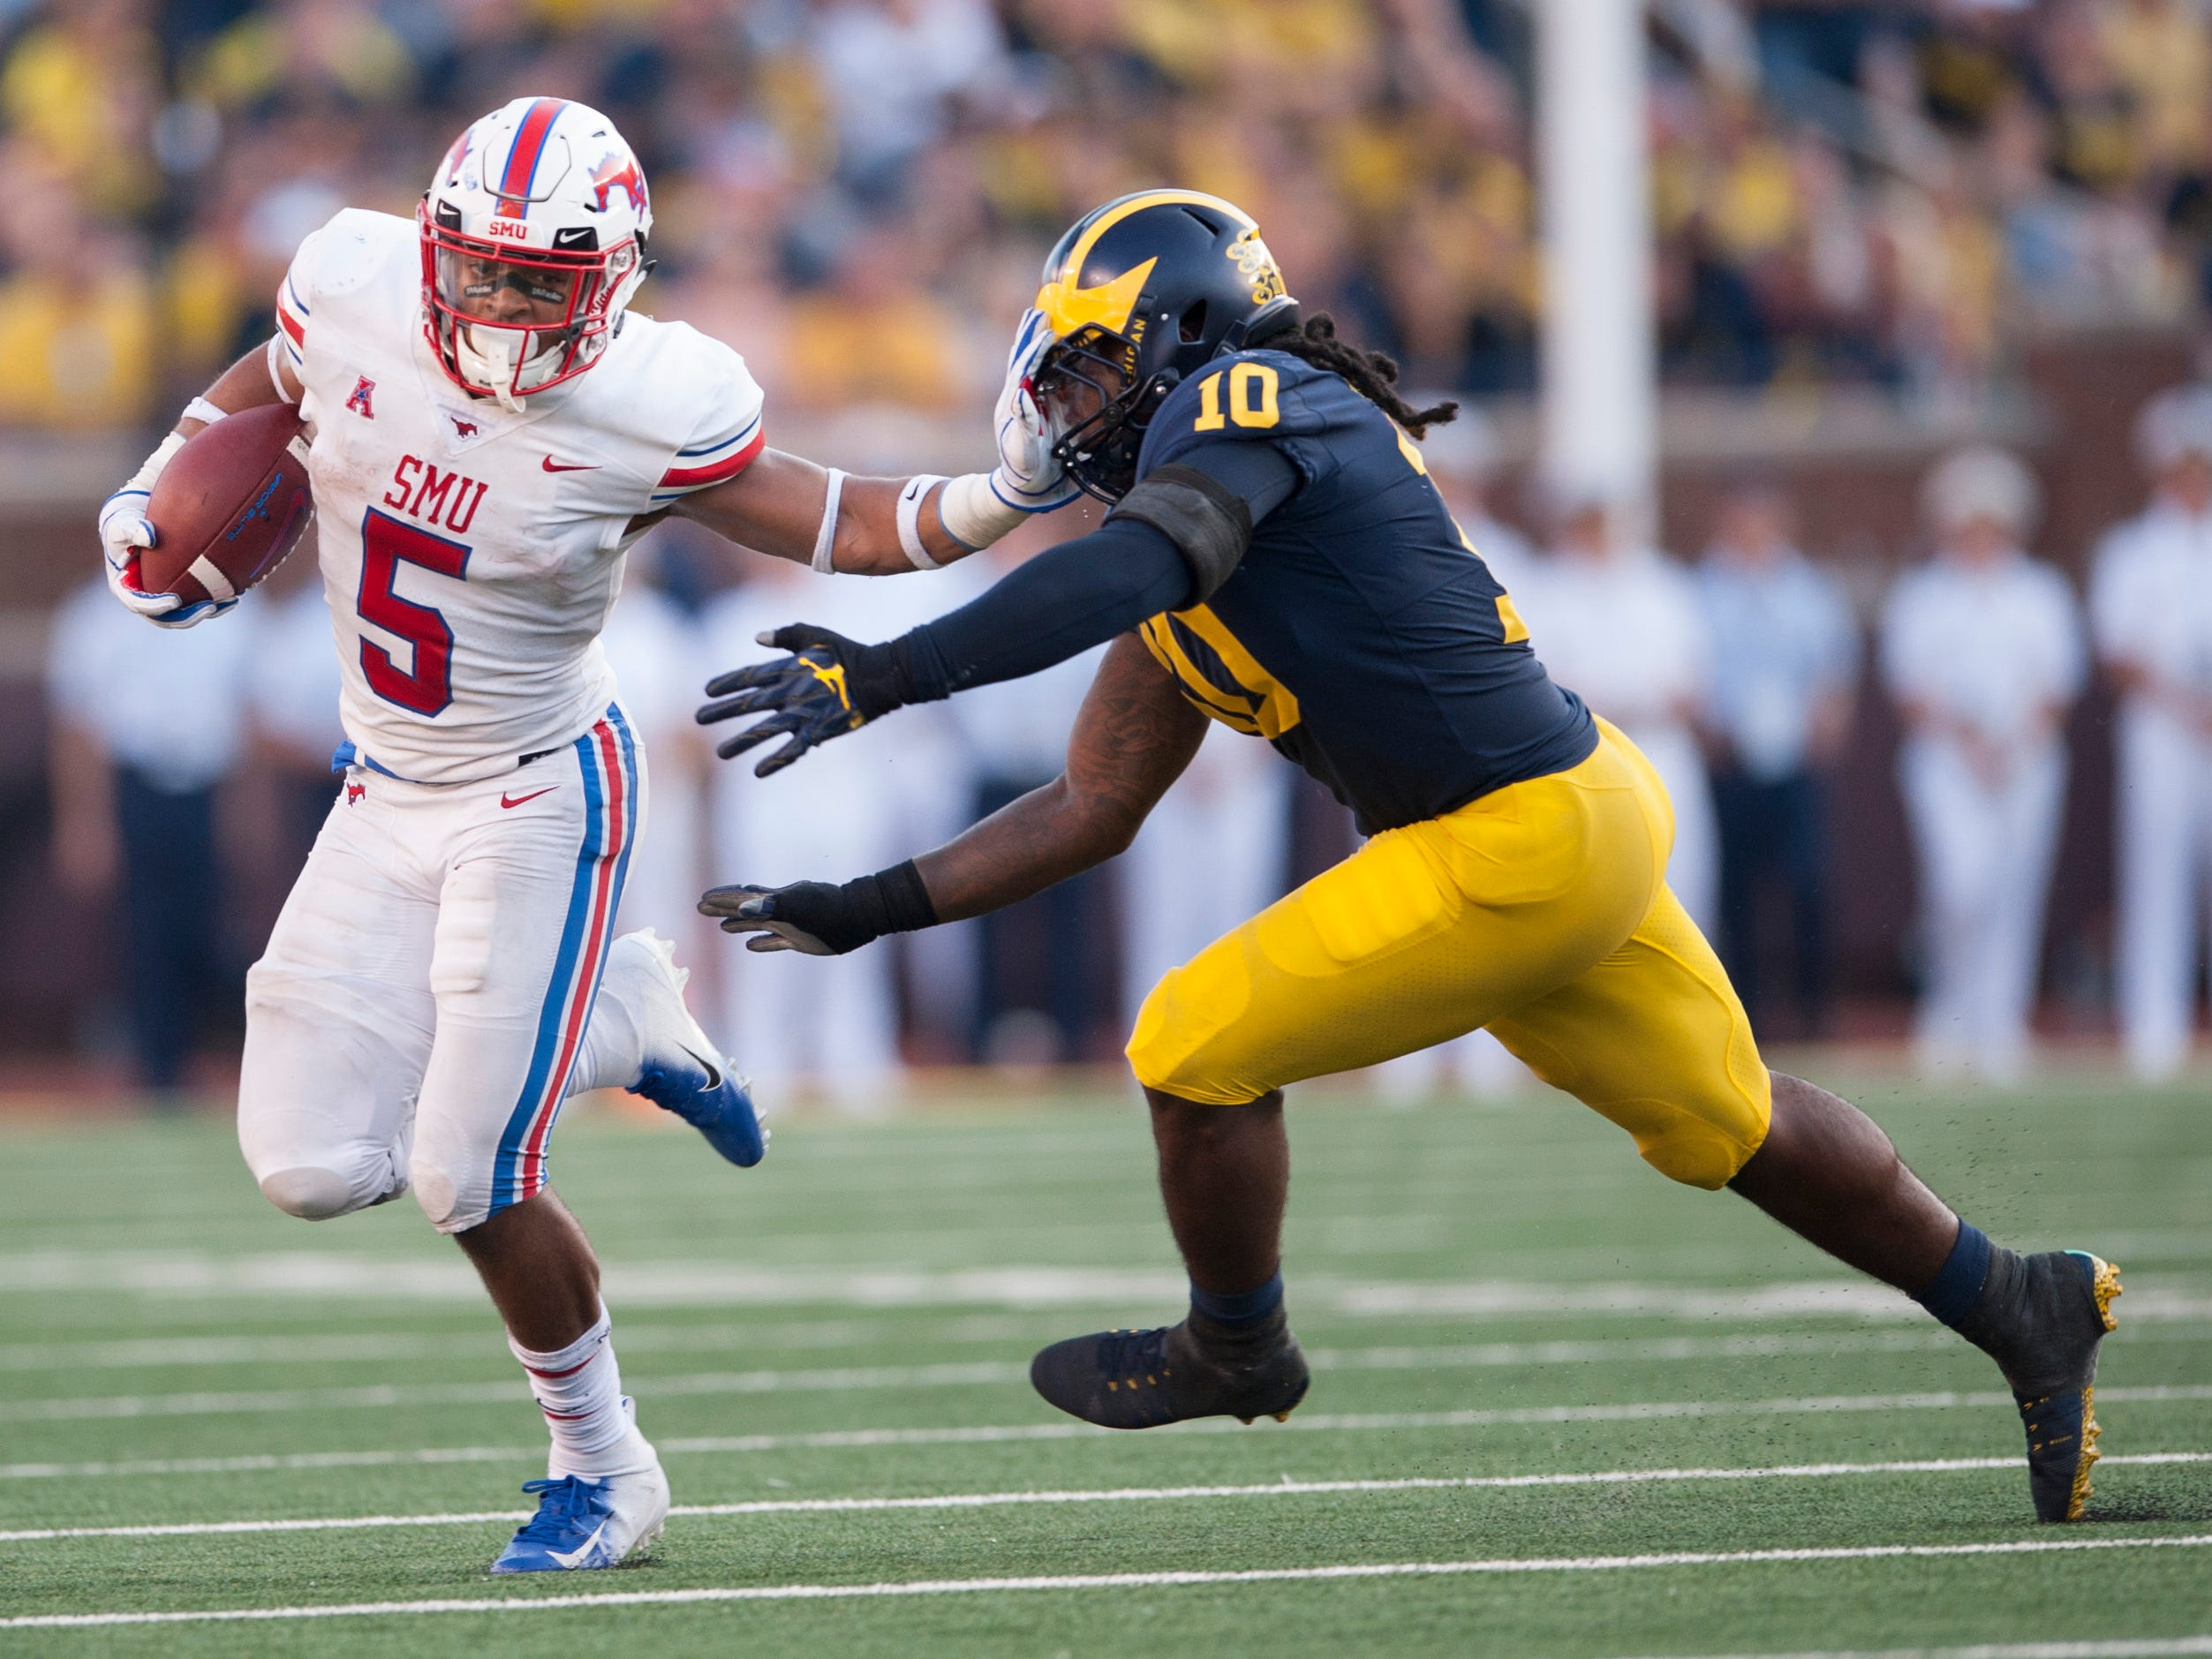 Southern Methodist running back Xavier Jones stiff arms Michigan linebacker Devin Bush on this second half run.